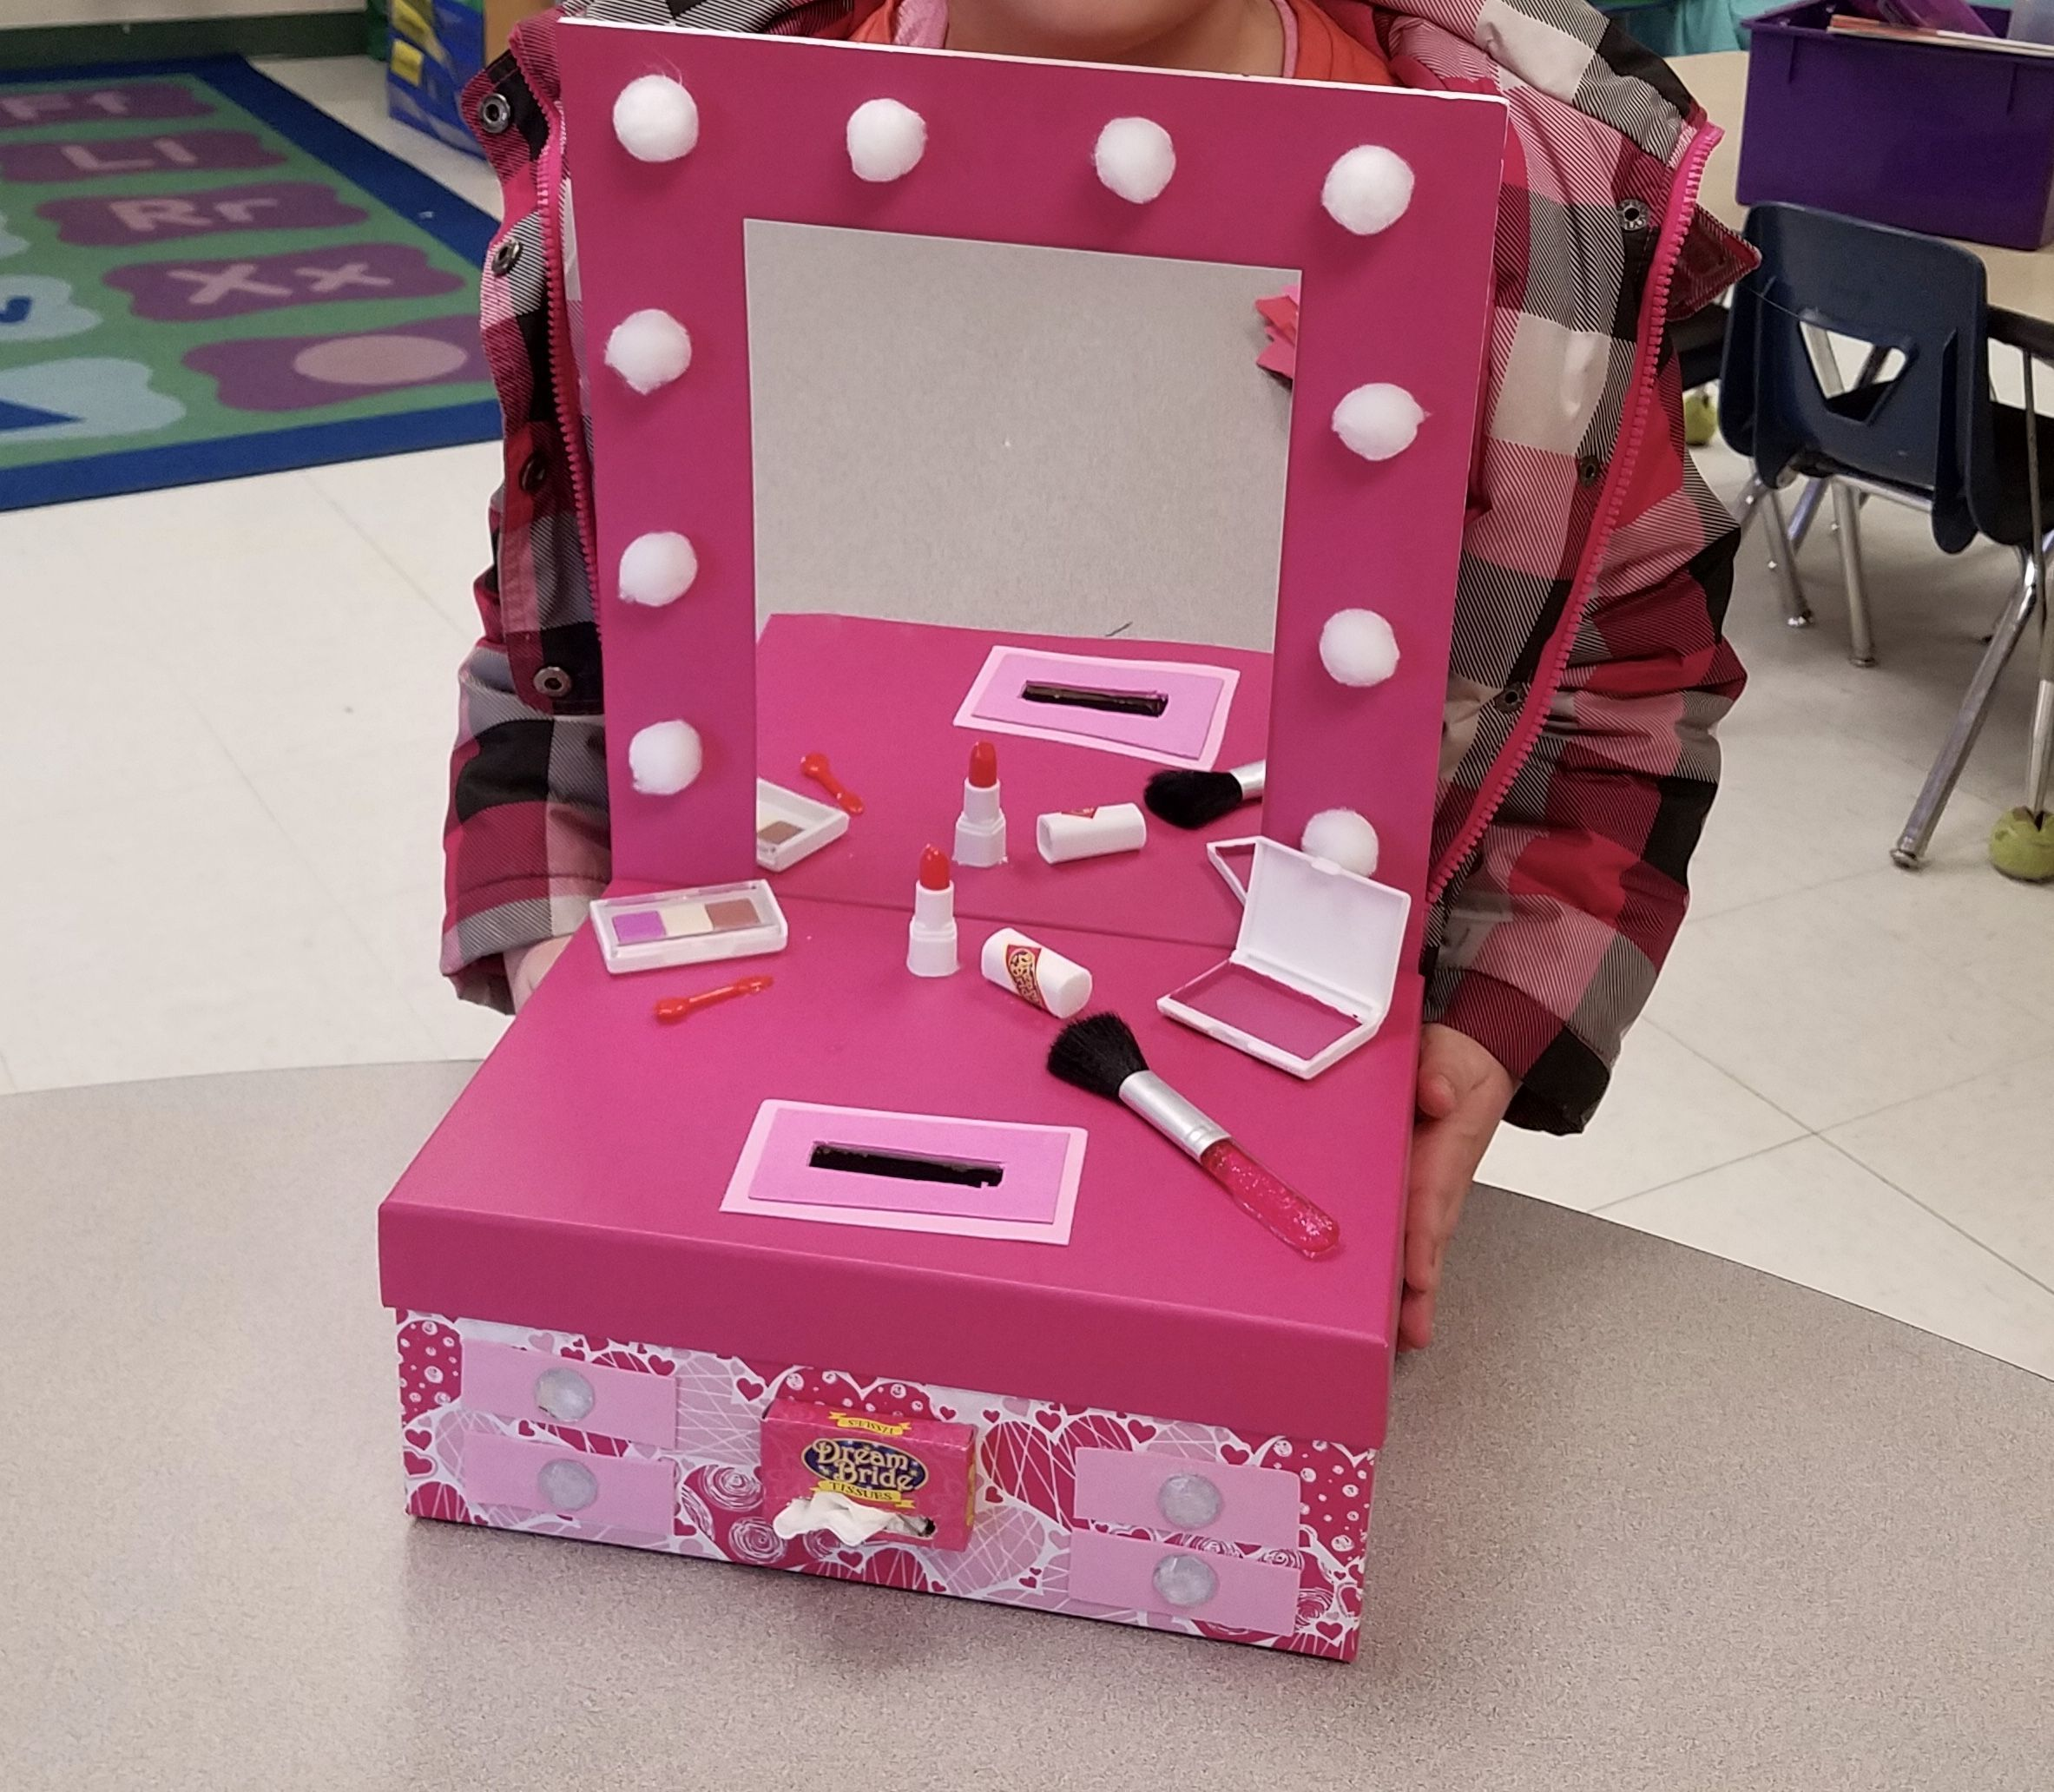 valentines girl gift - Taylyns Valentines Day Box for school! We found a idea a...